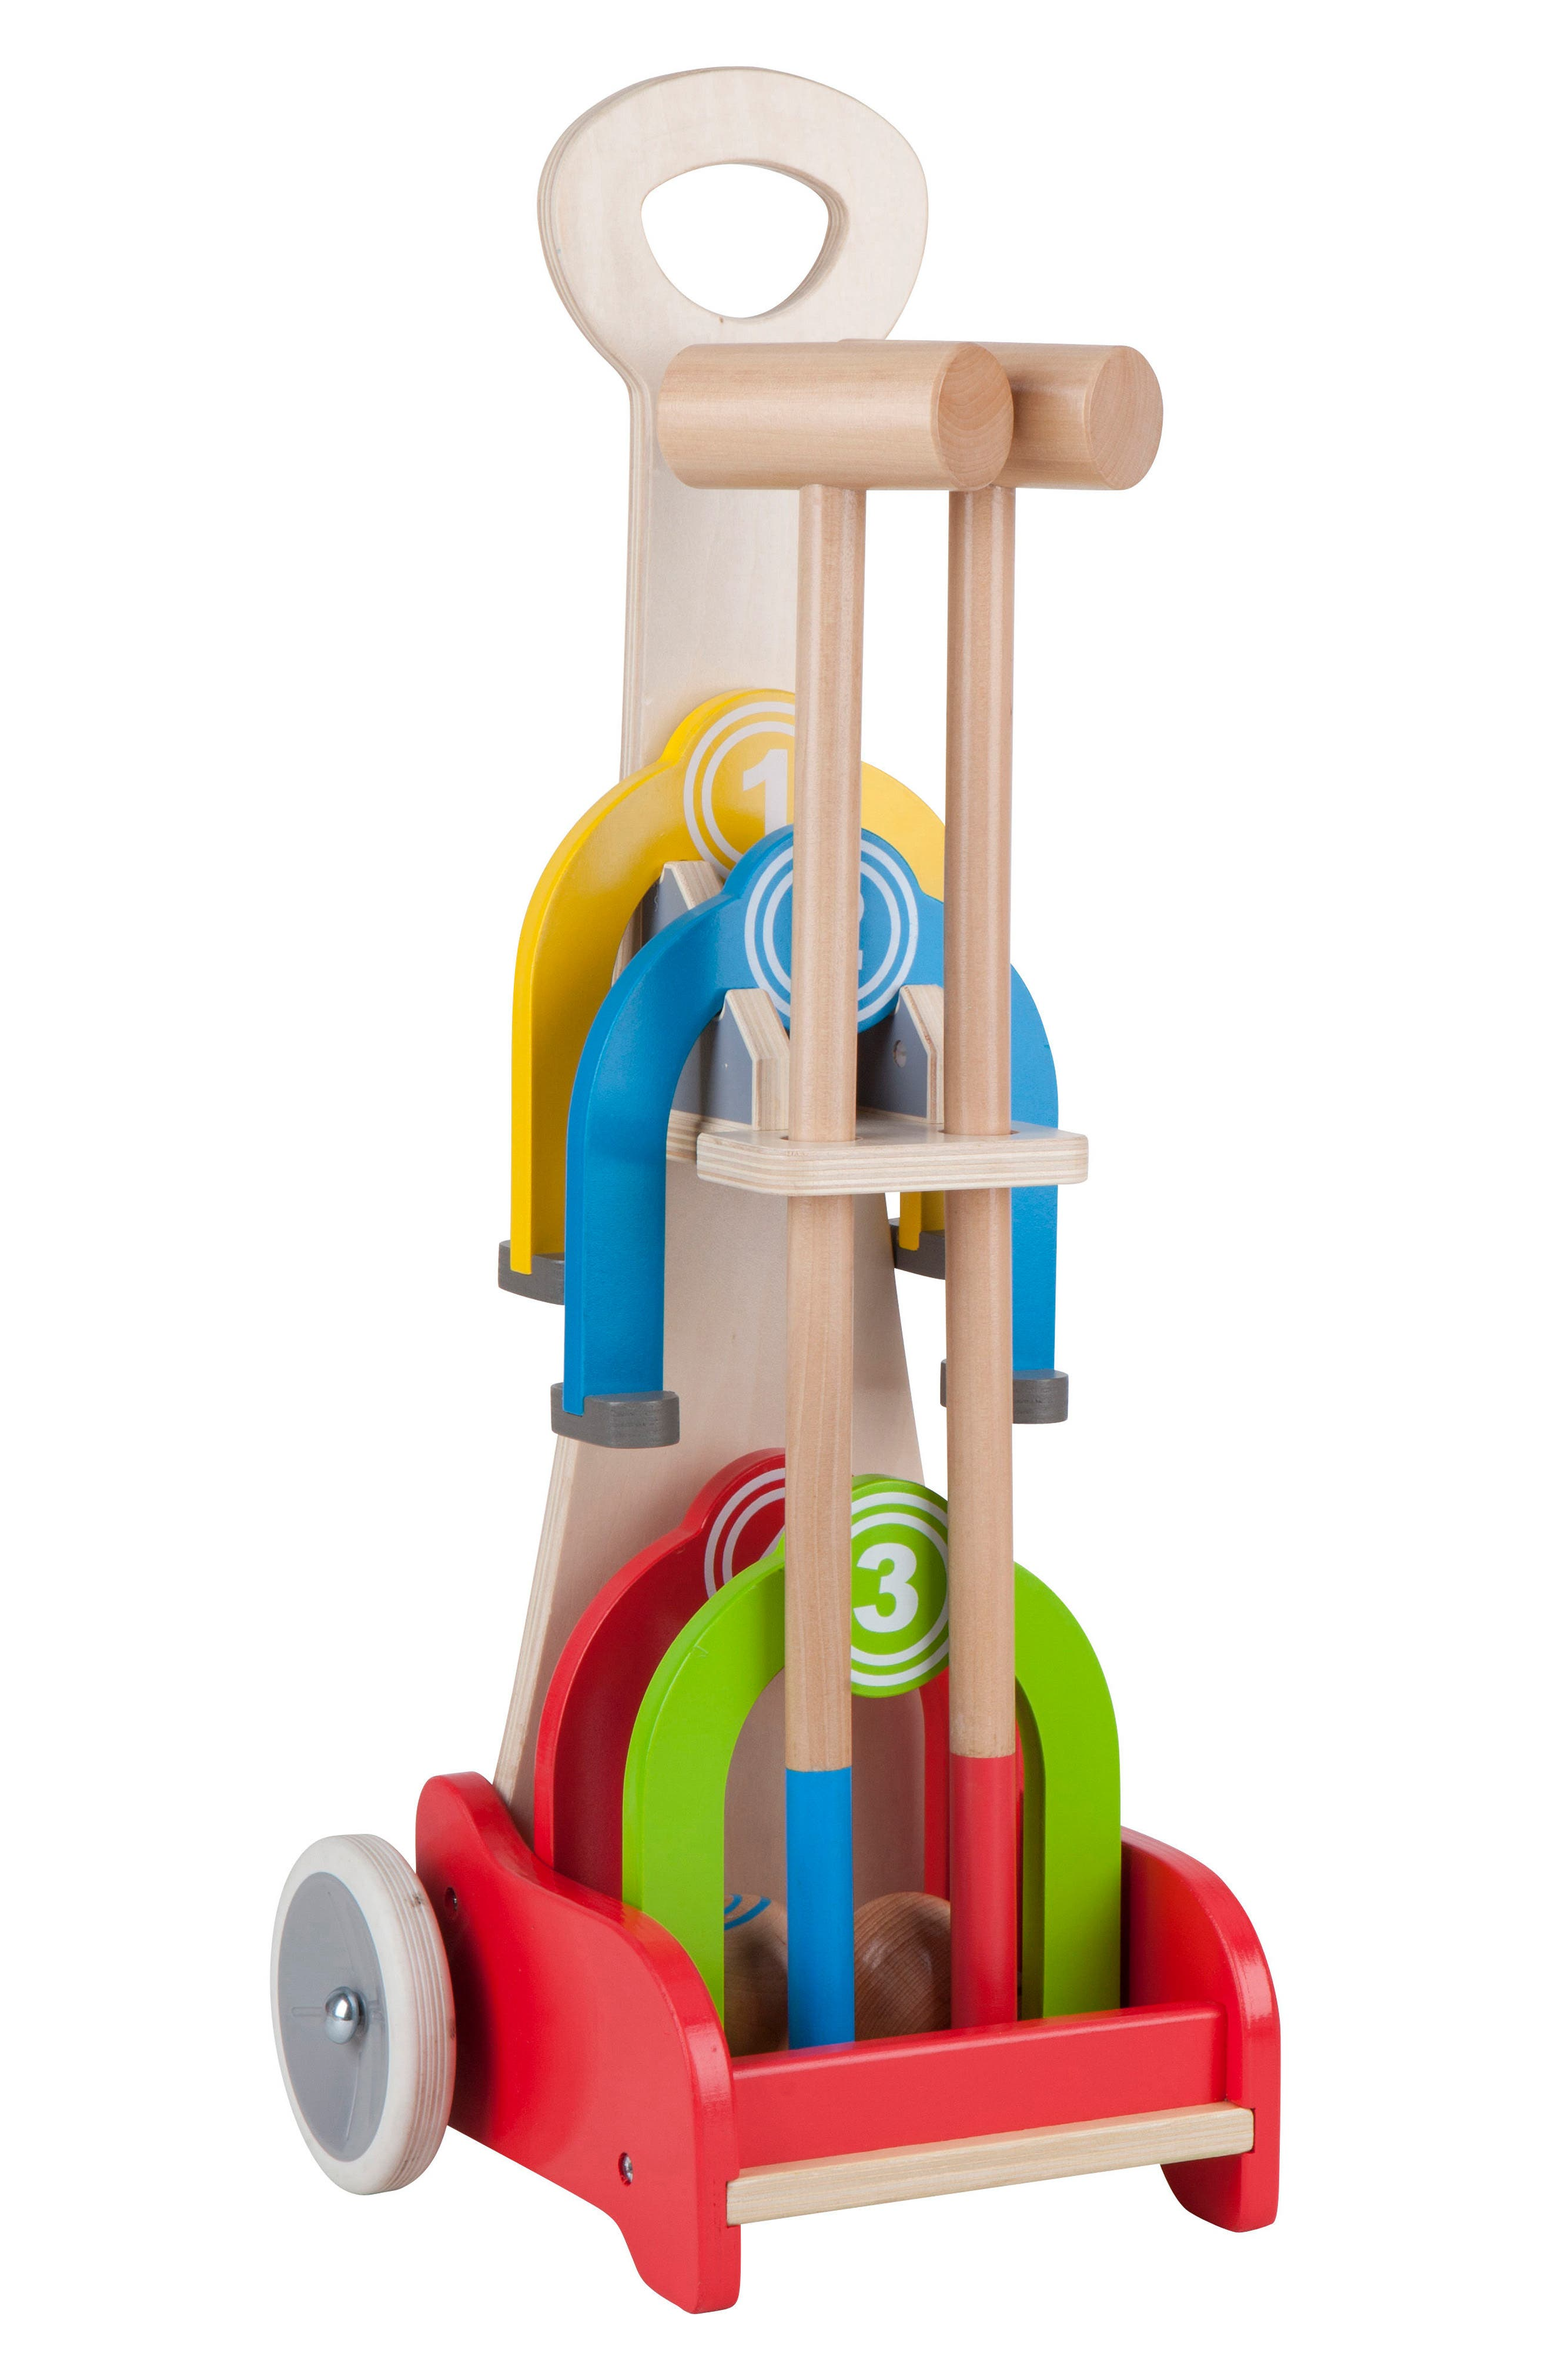 Rainbow Croquet Caddy Toy Set,                             Main thumbnail 1, color,                             Multi